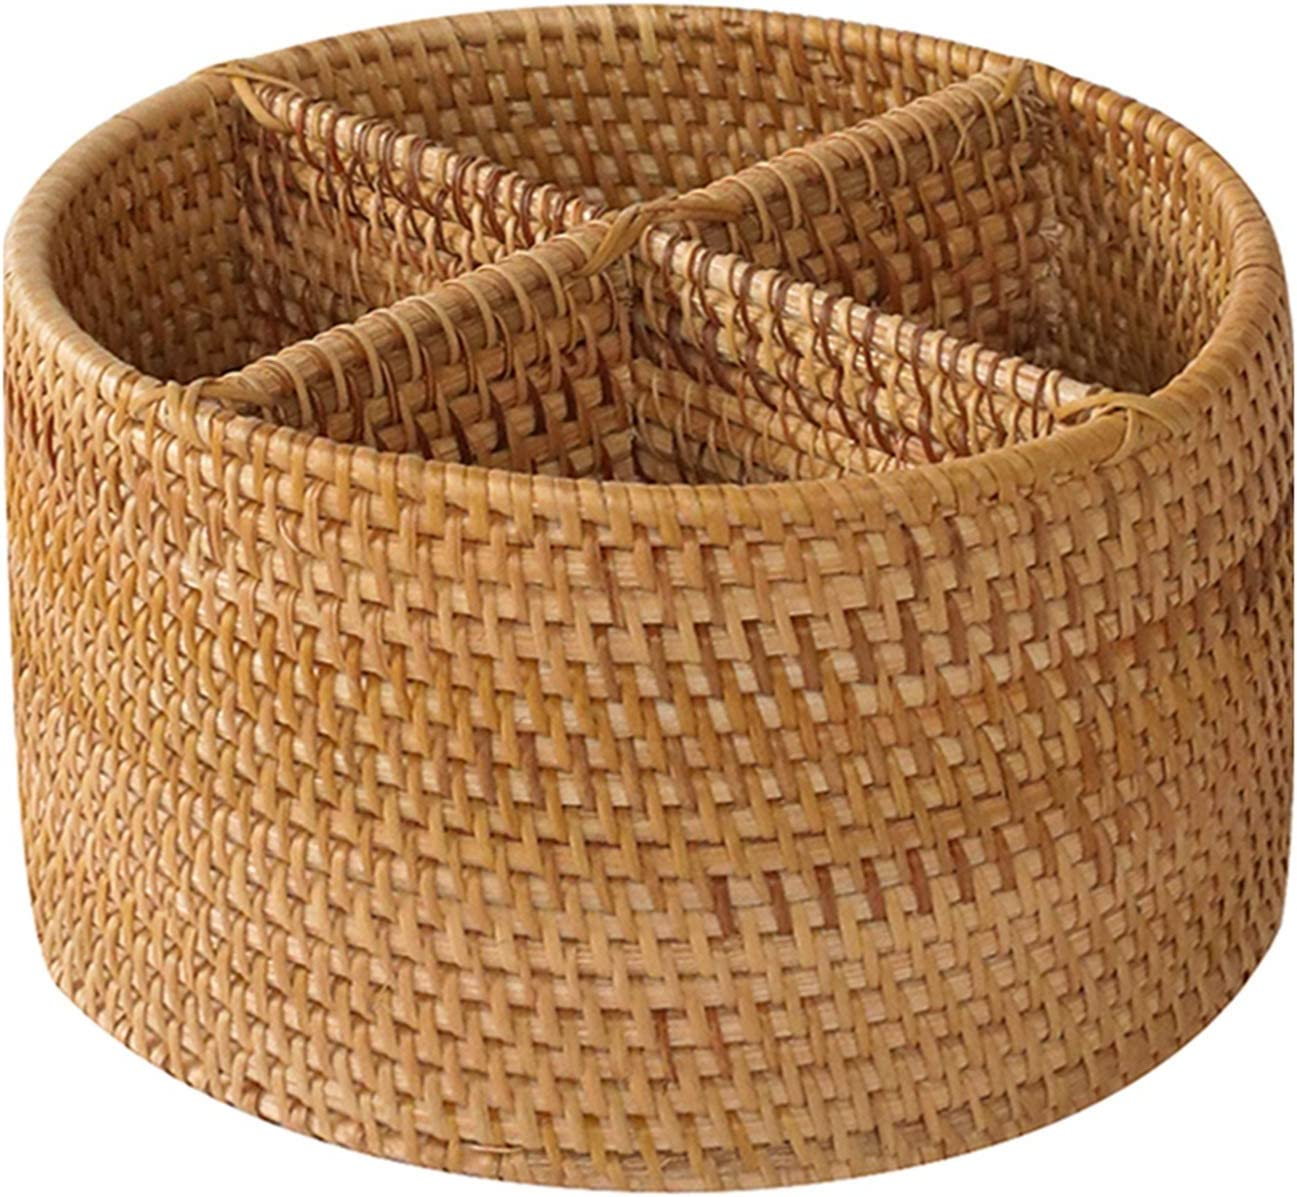 the teapot company Max 62% OFF Handmade Rattan Max 82% OFF Basket Tab Candy Grid